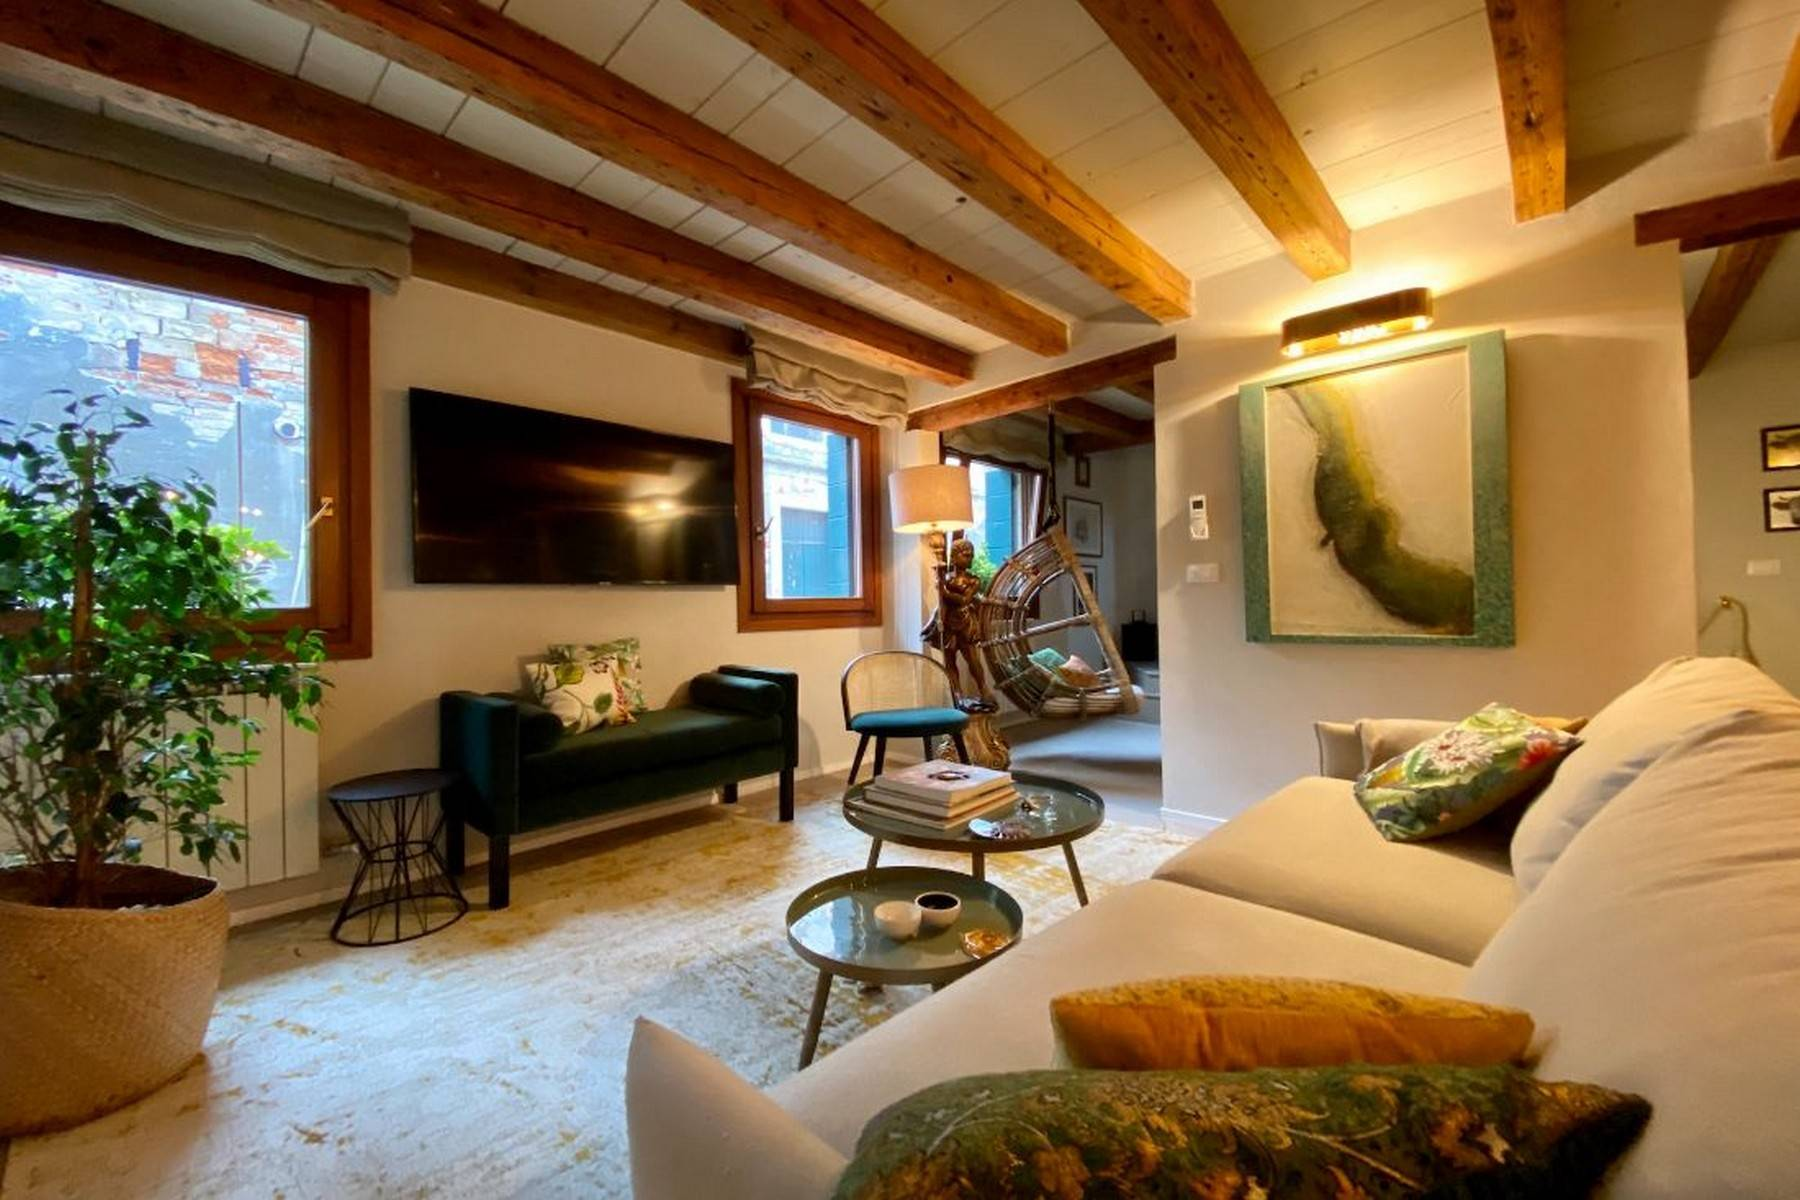 Castello design duplex with charming roof terrace - 1